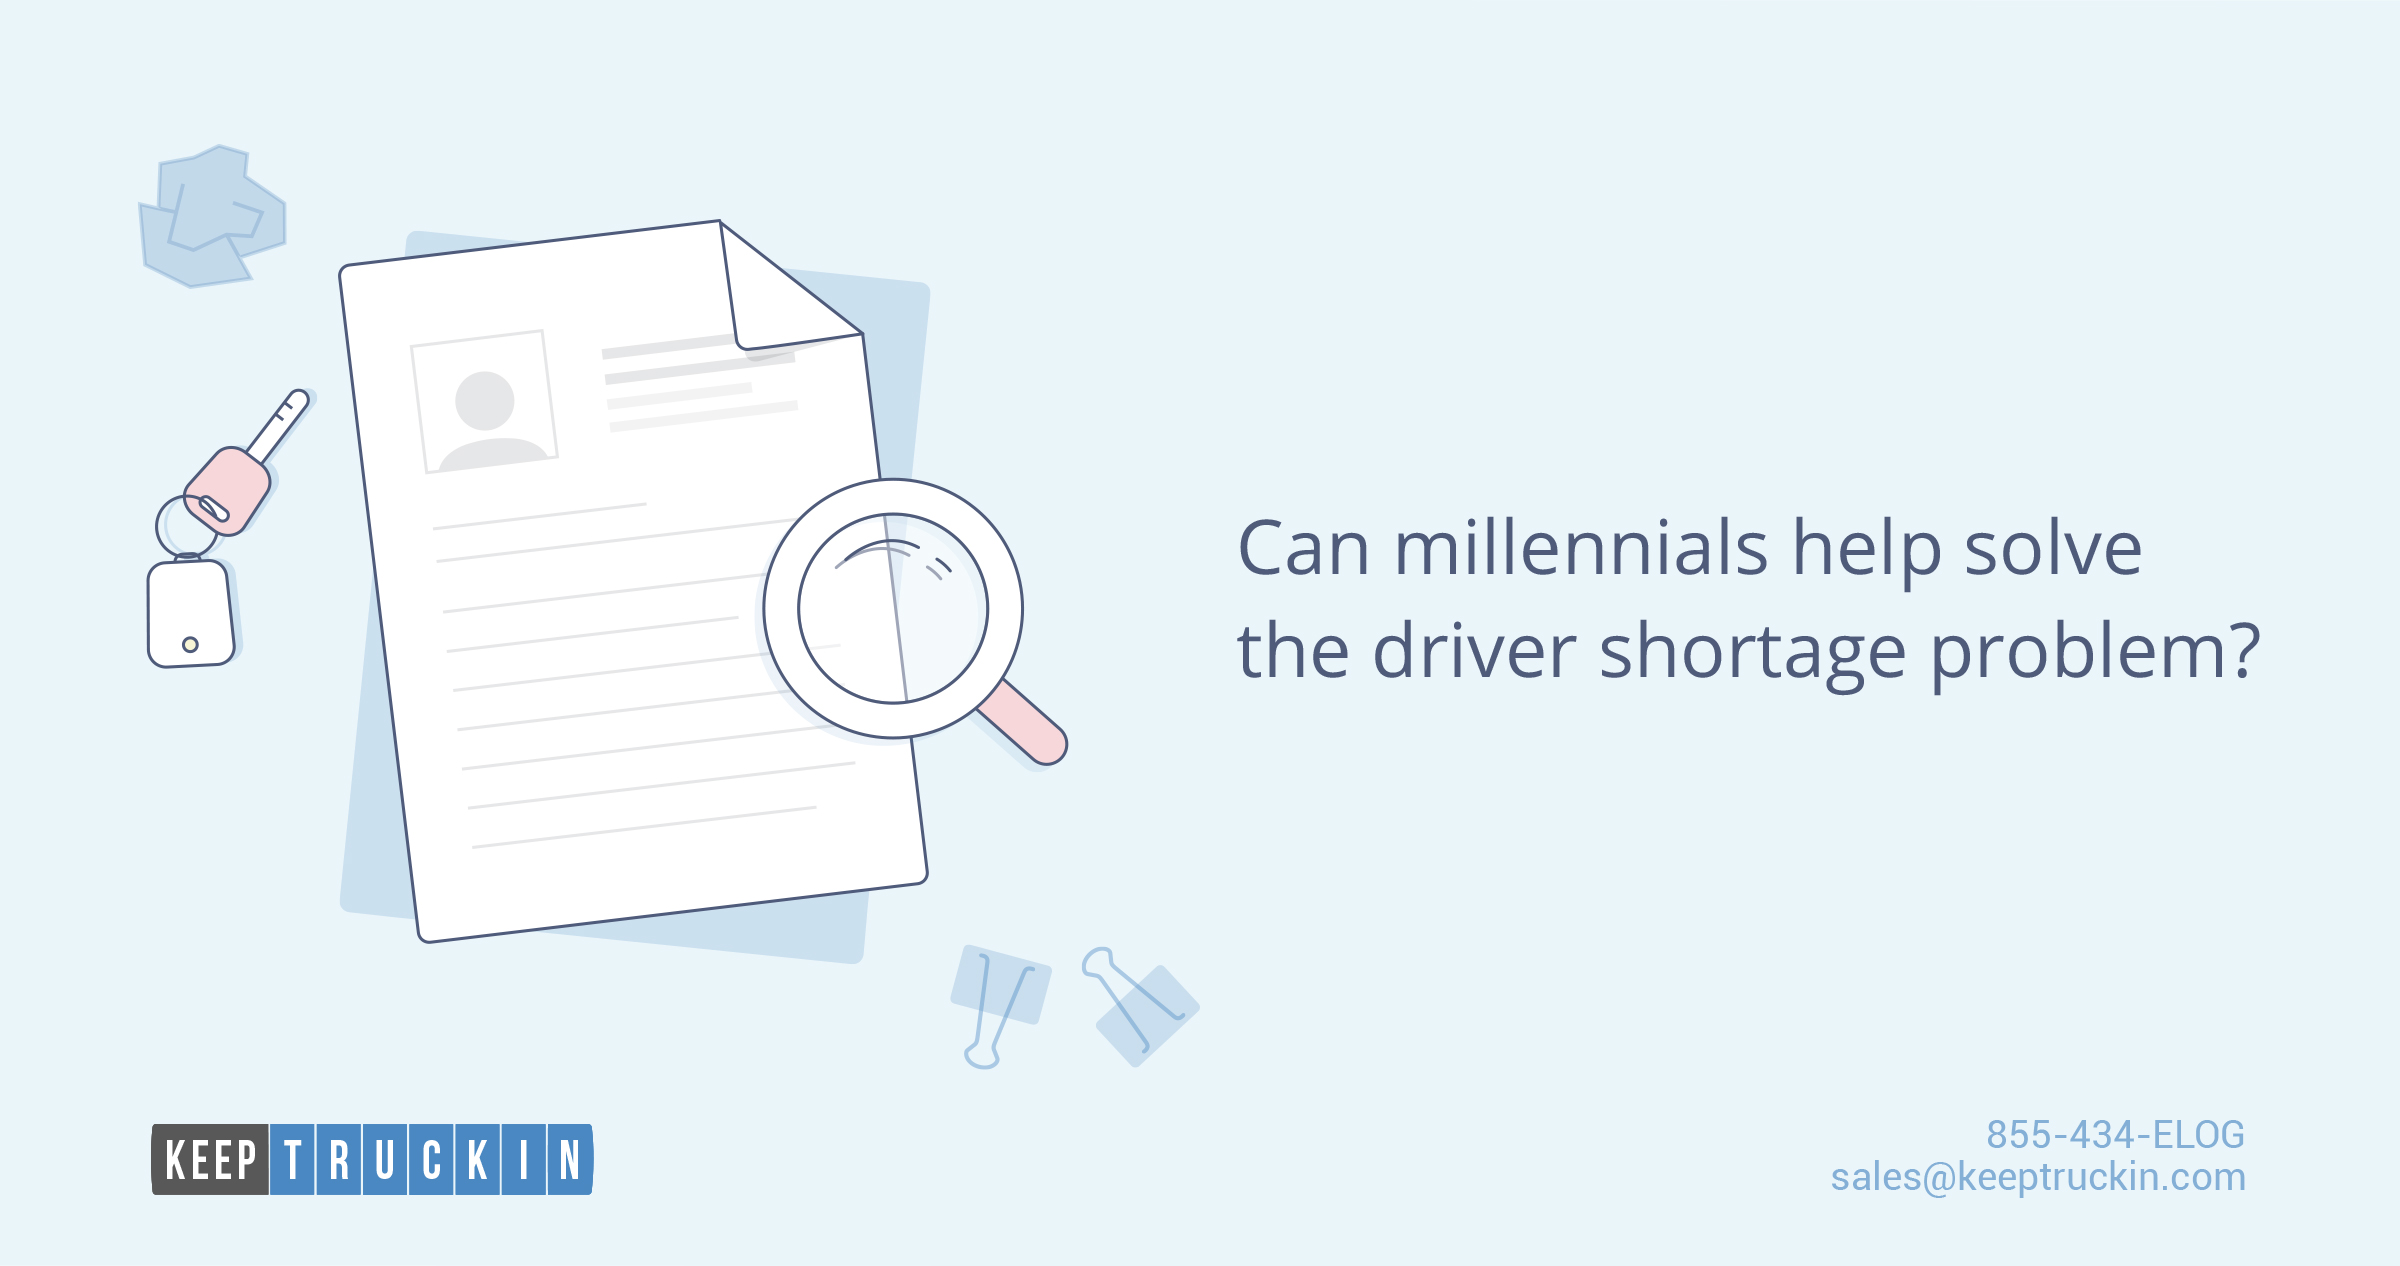 Can millennials help solve the driver shortage problem?